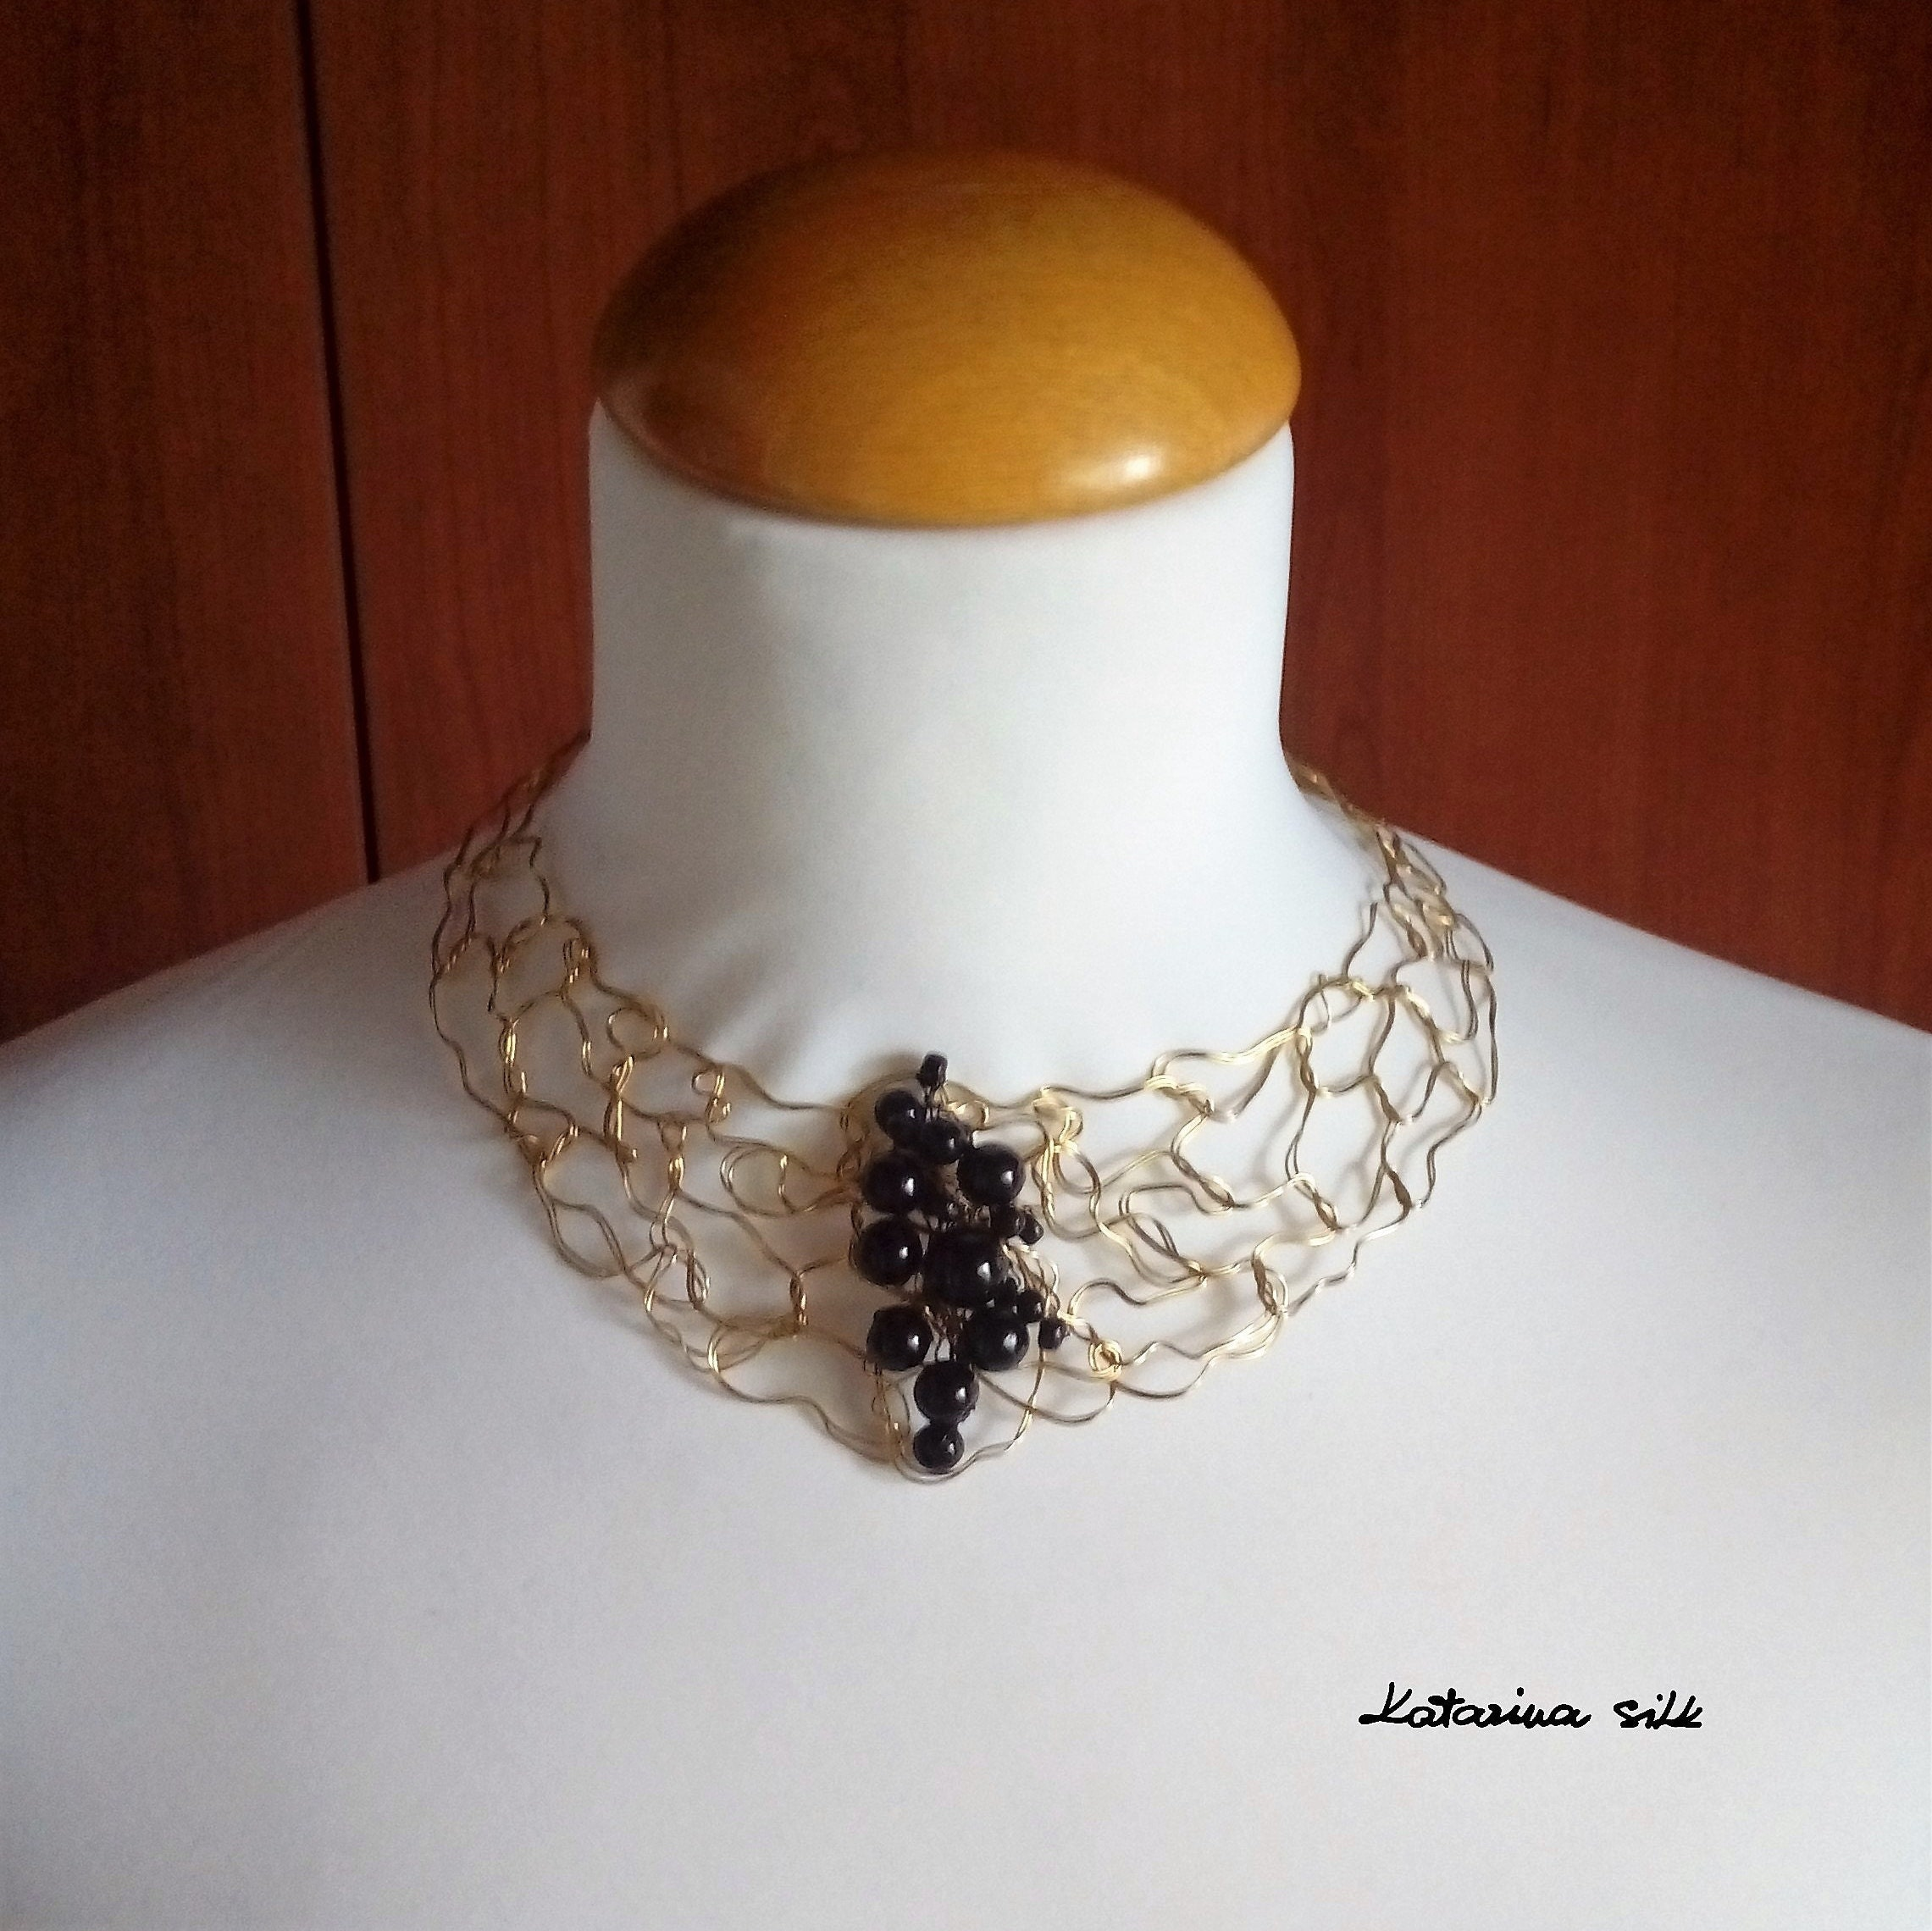 Statement Choker Necklace for Mom Gift Gold Color Necklace with Black Wooden Beads Handmade Knotted Wire Choker for Woman Unique Gifts